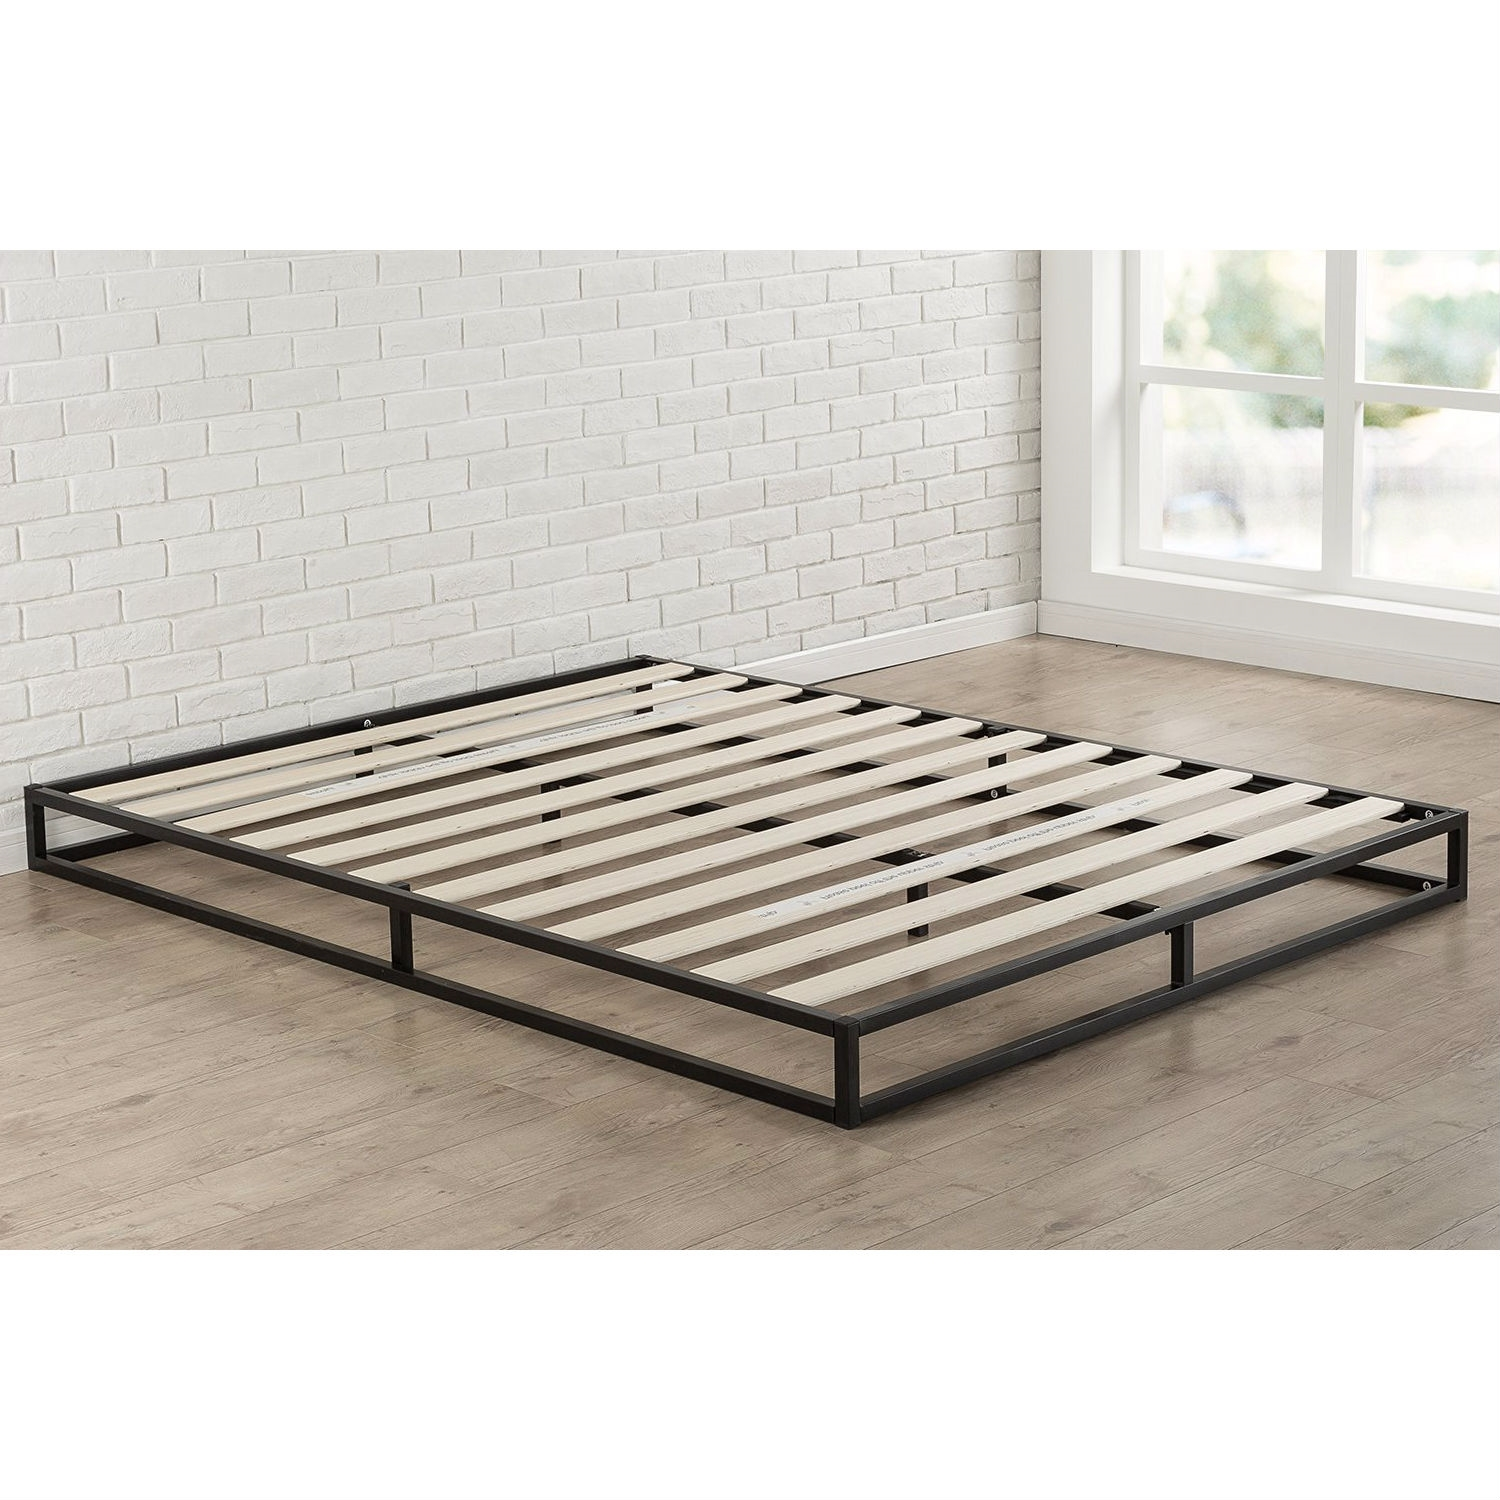 foldable review lucid mattress metal a good and bed platform frame v